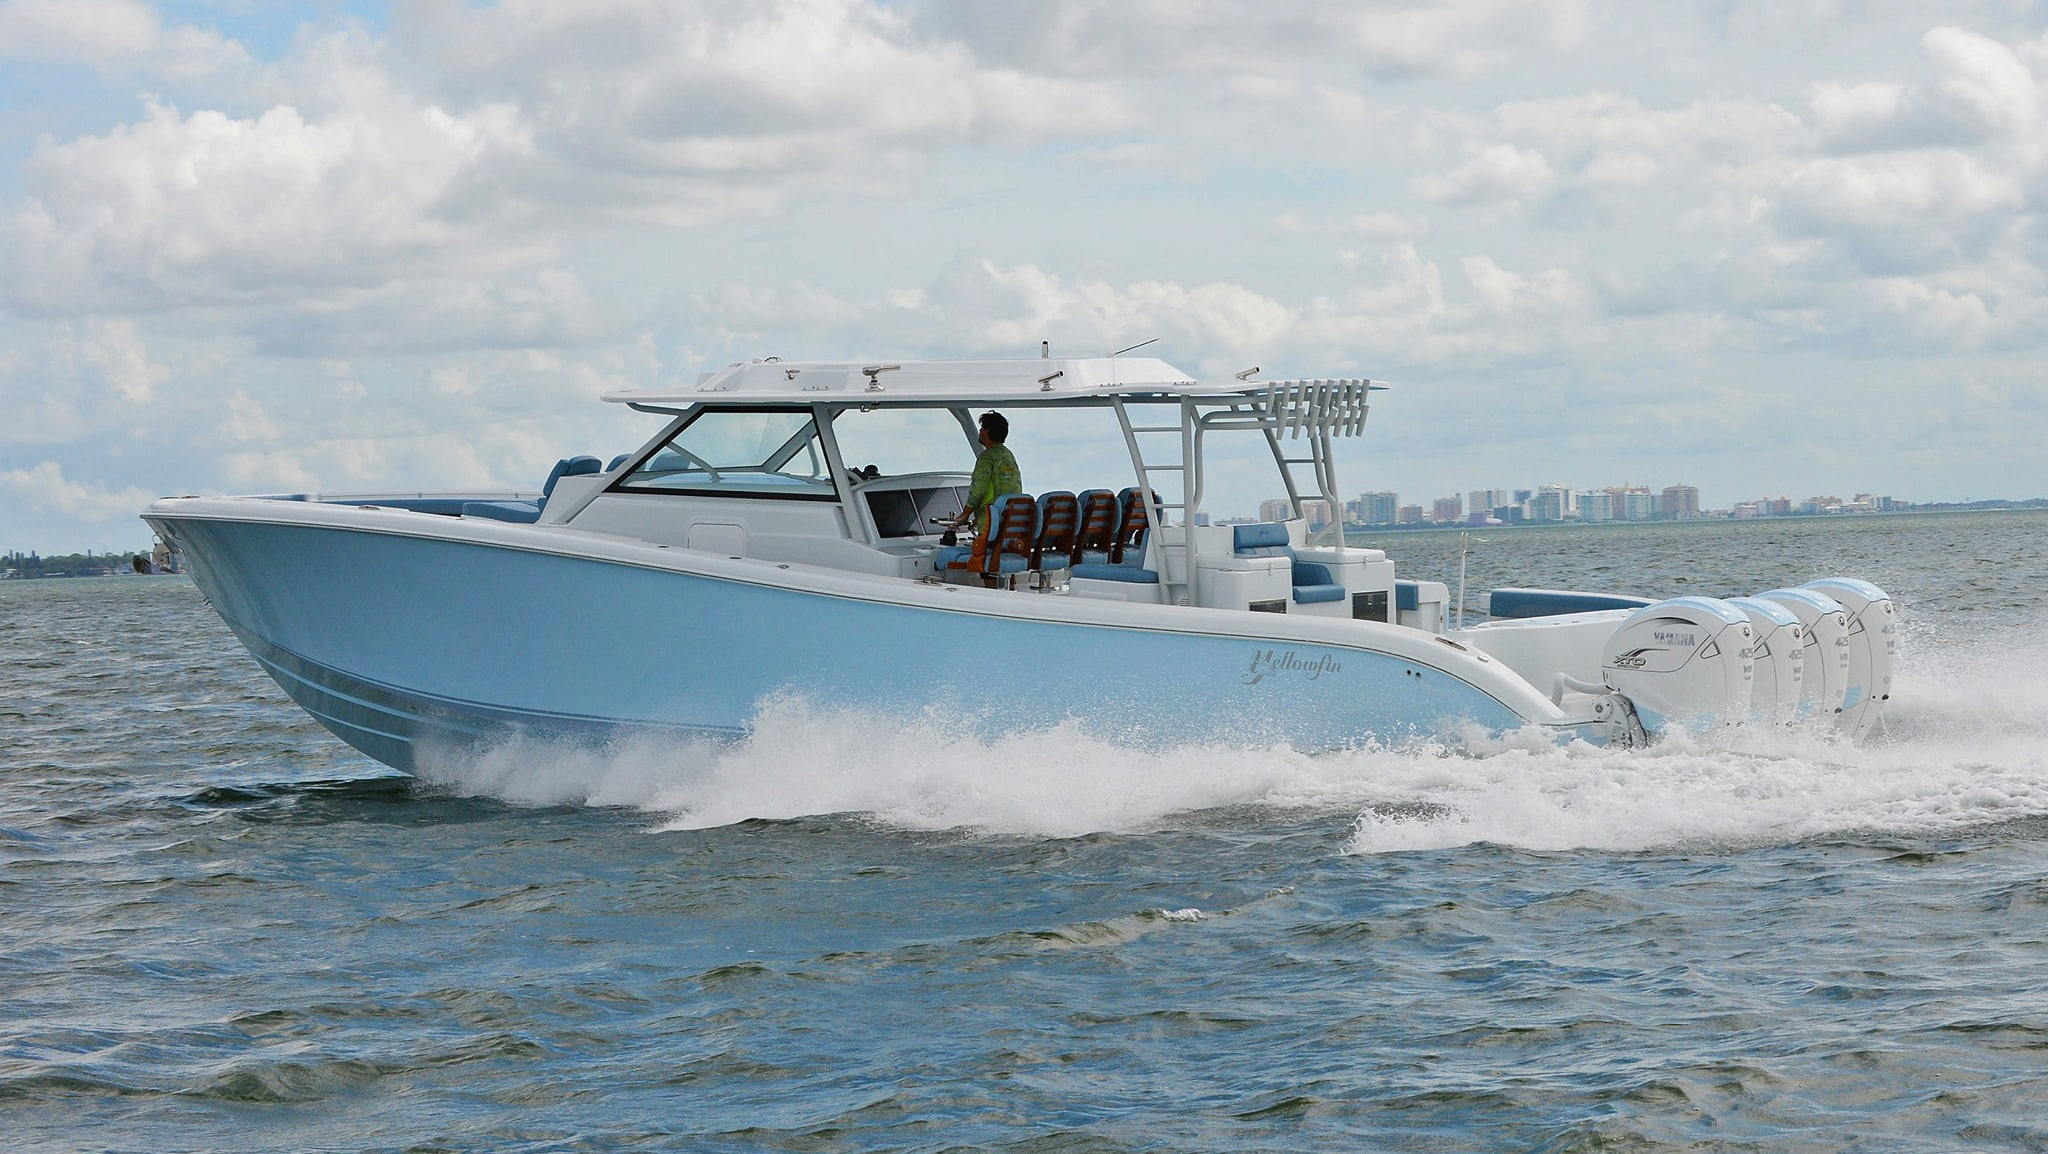 Yellowfin 54 Offshore Boat Review